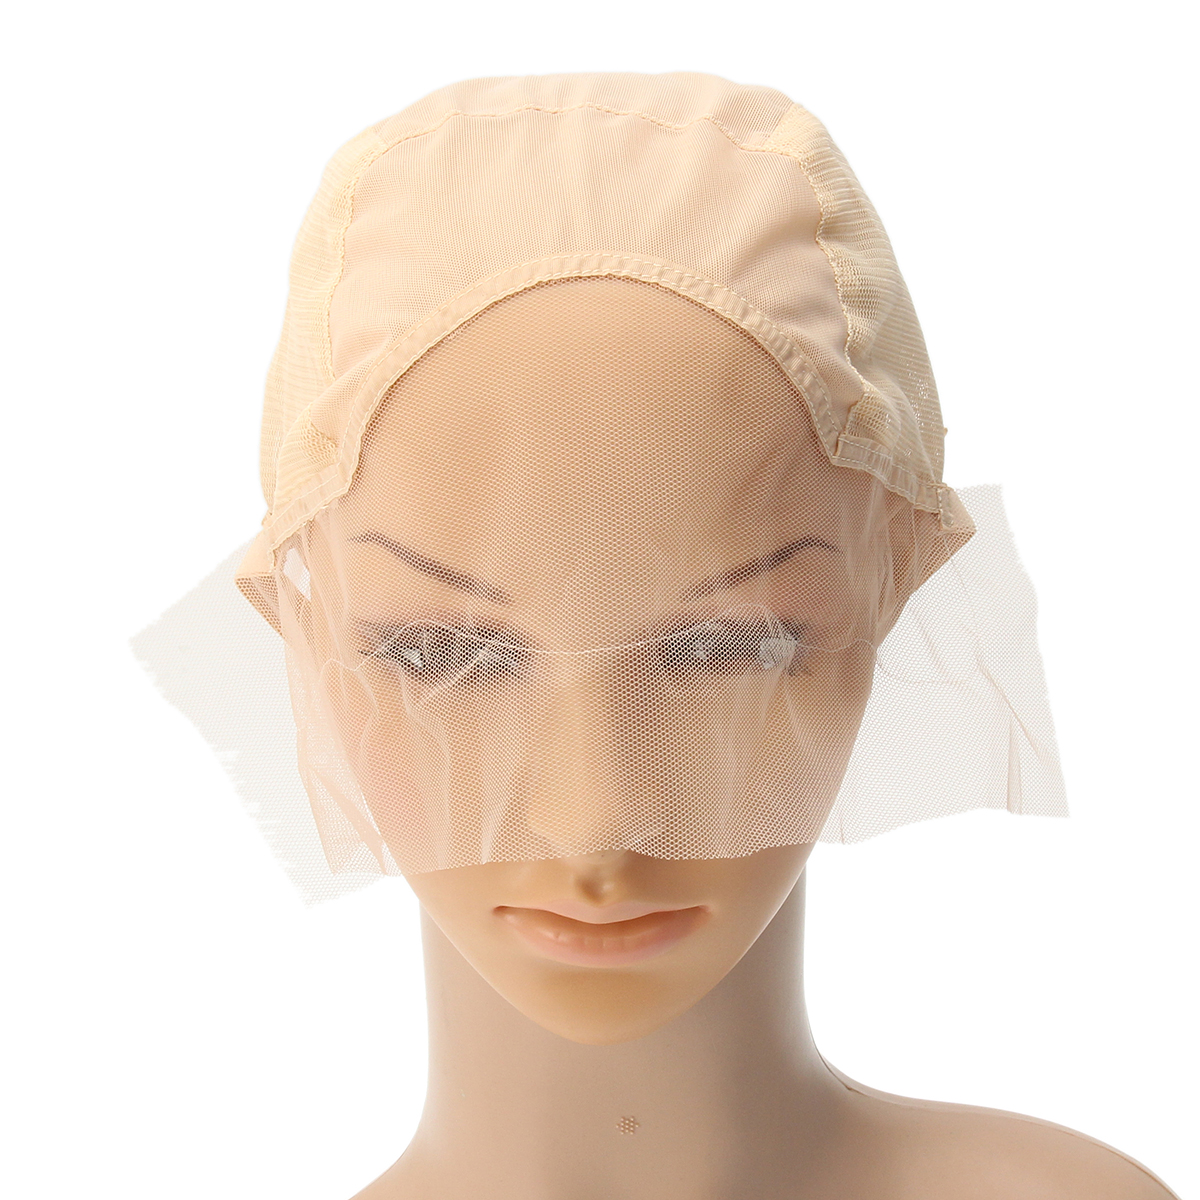 Wig Cap For Wig Making Weave Cap Elastic Hair Net Mesh Adjustable Straps